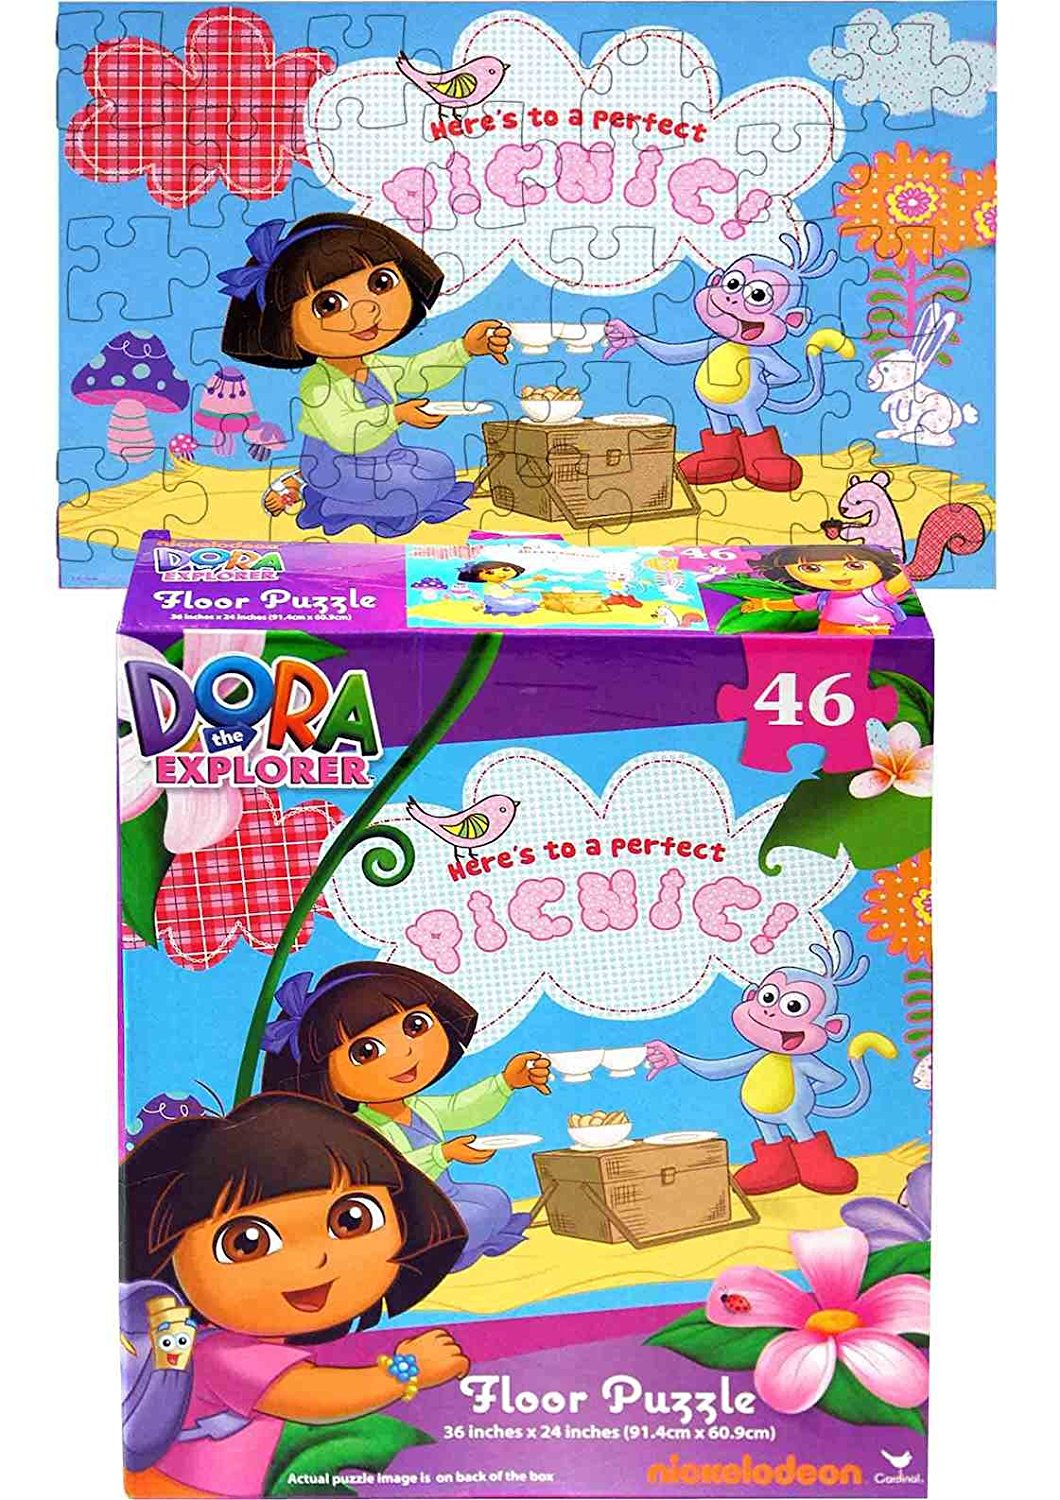 Dora Floor Puzzle, 46-Piece, Includes Dora the Explorer By Nickelodeon by